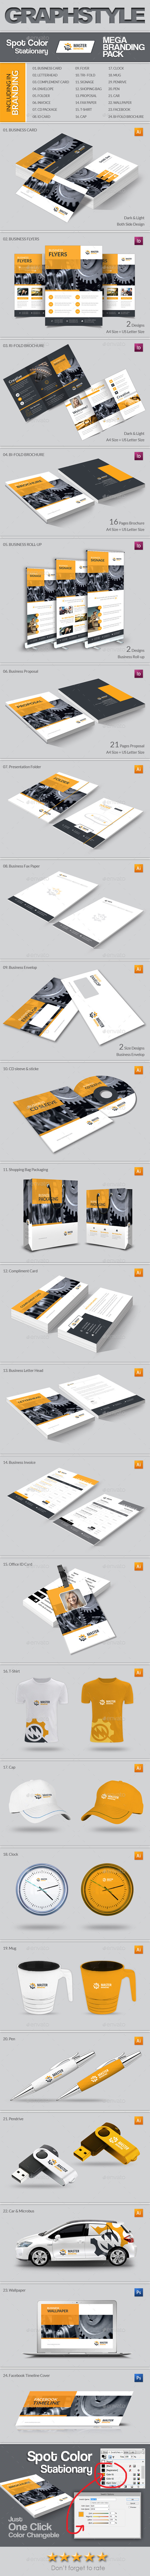 Master Business Mega Branding Pack